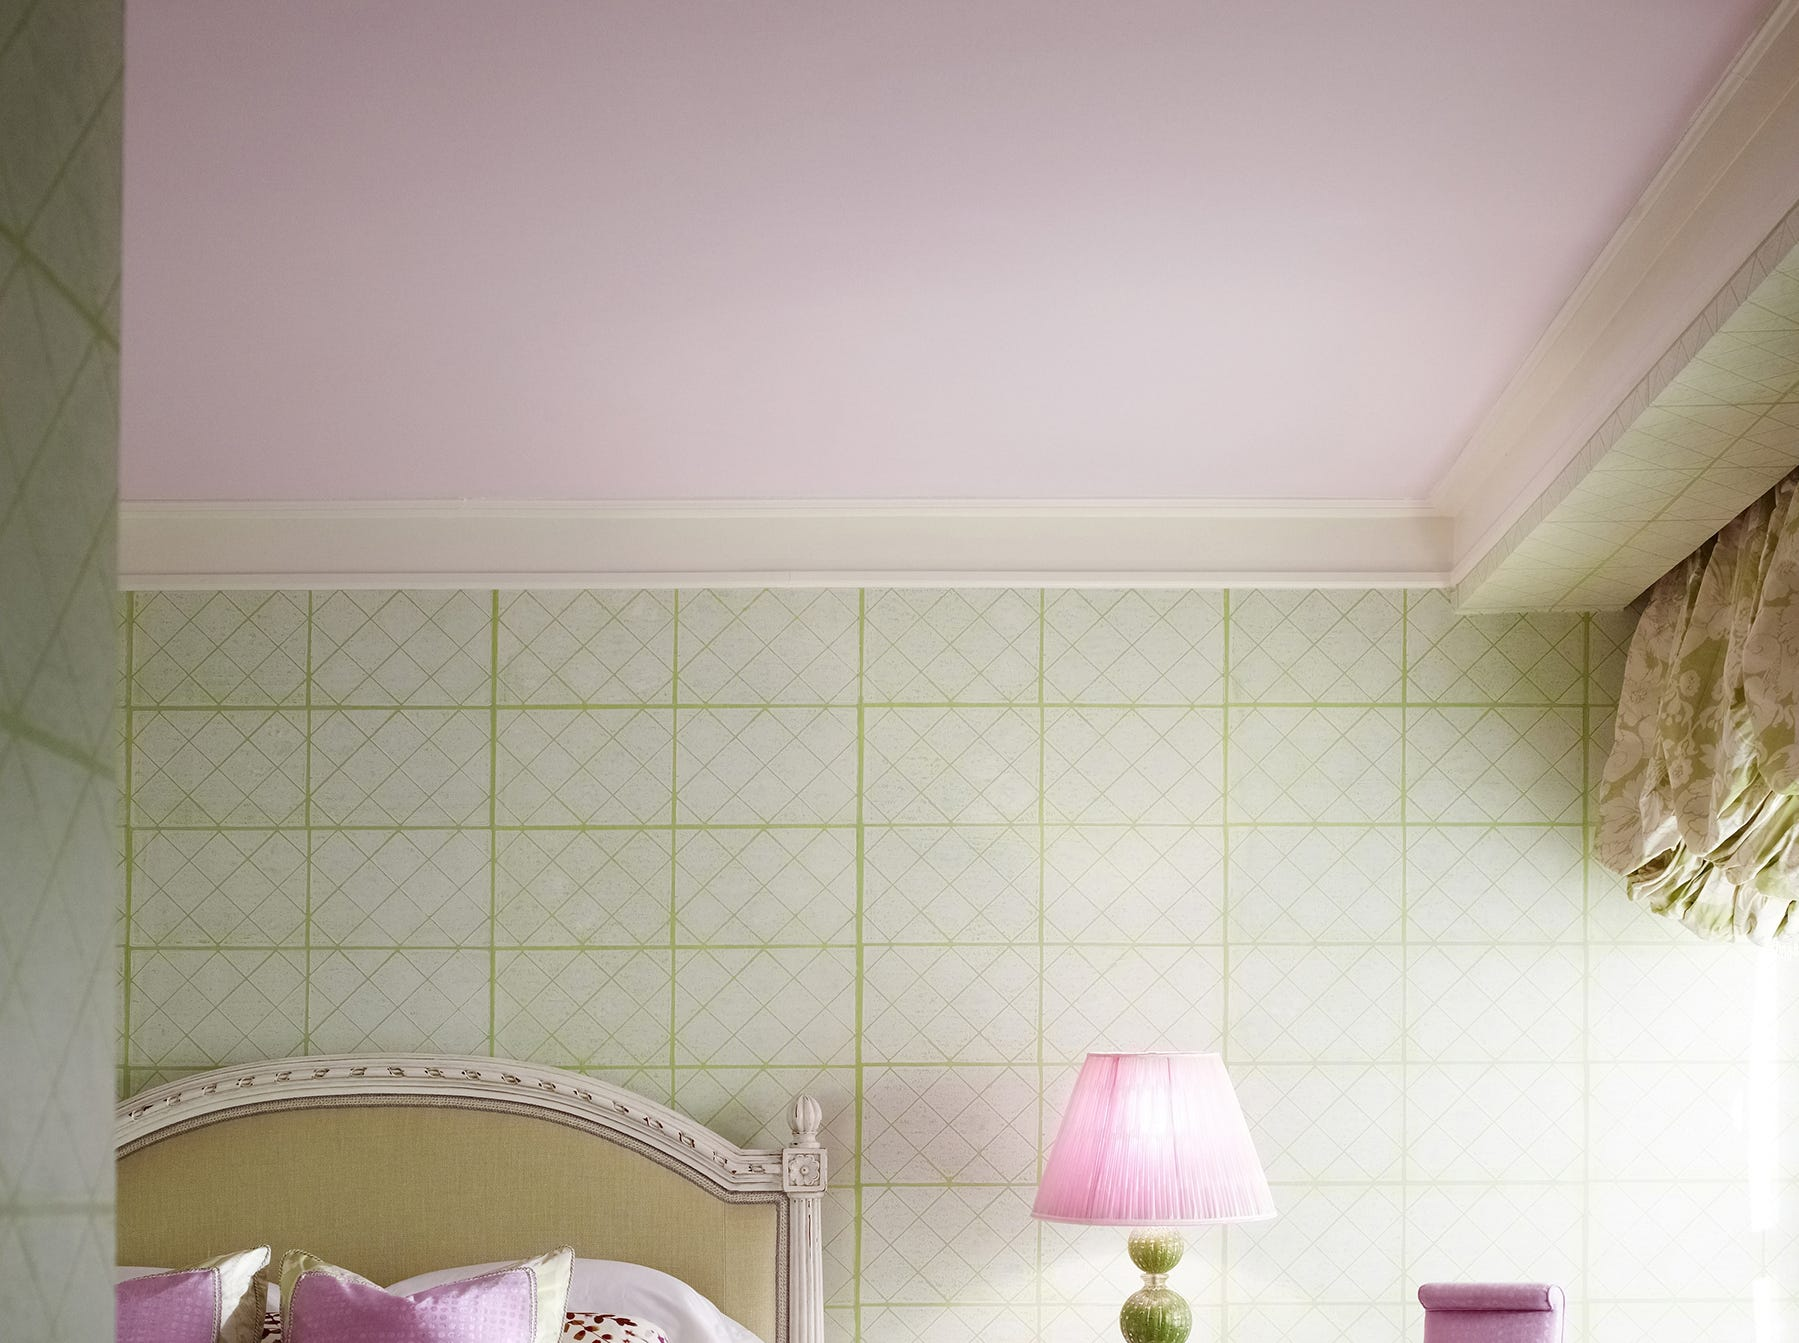 Offsetting a hand-blocked wallpaper in light spring green, Jamie Drake chose to pull out pinks from the rug and fabrics, with a ceiling painted in a soft shade of boysenberry mousse.